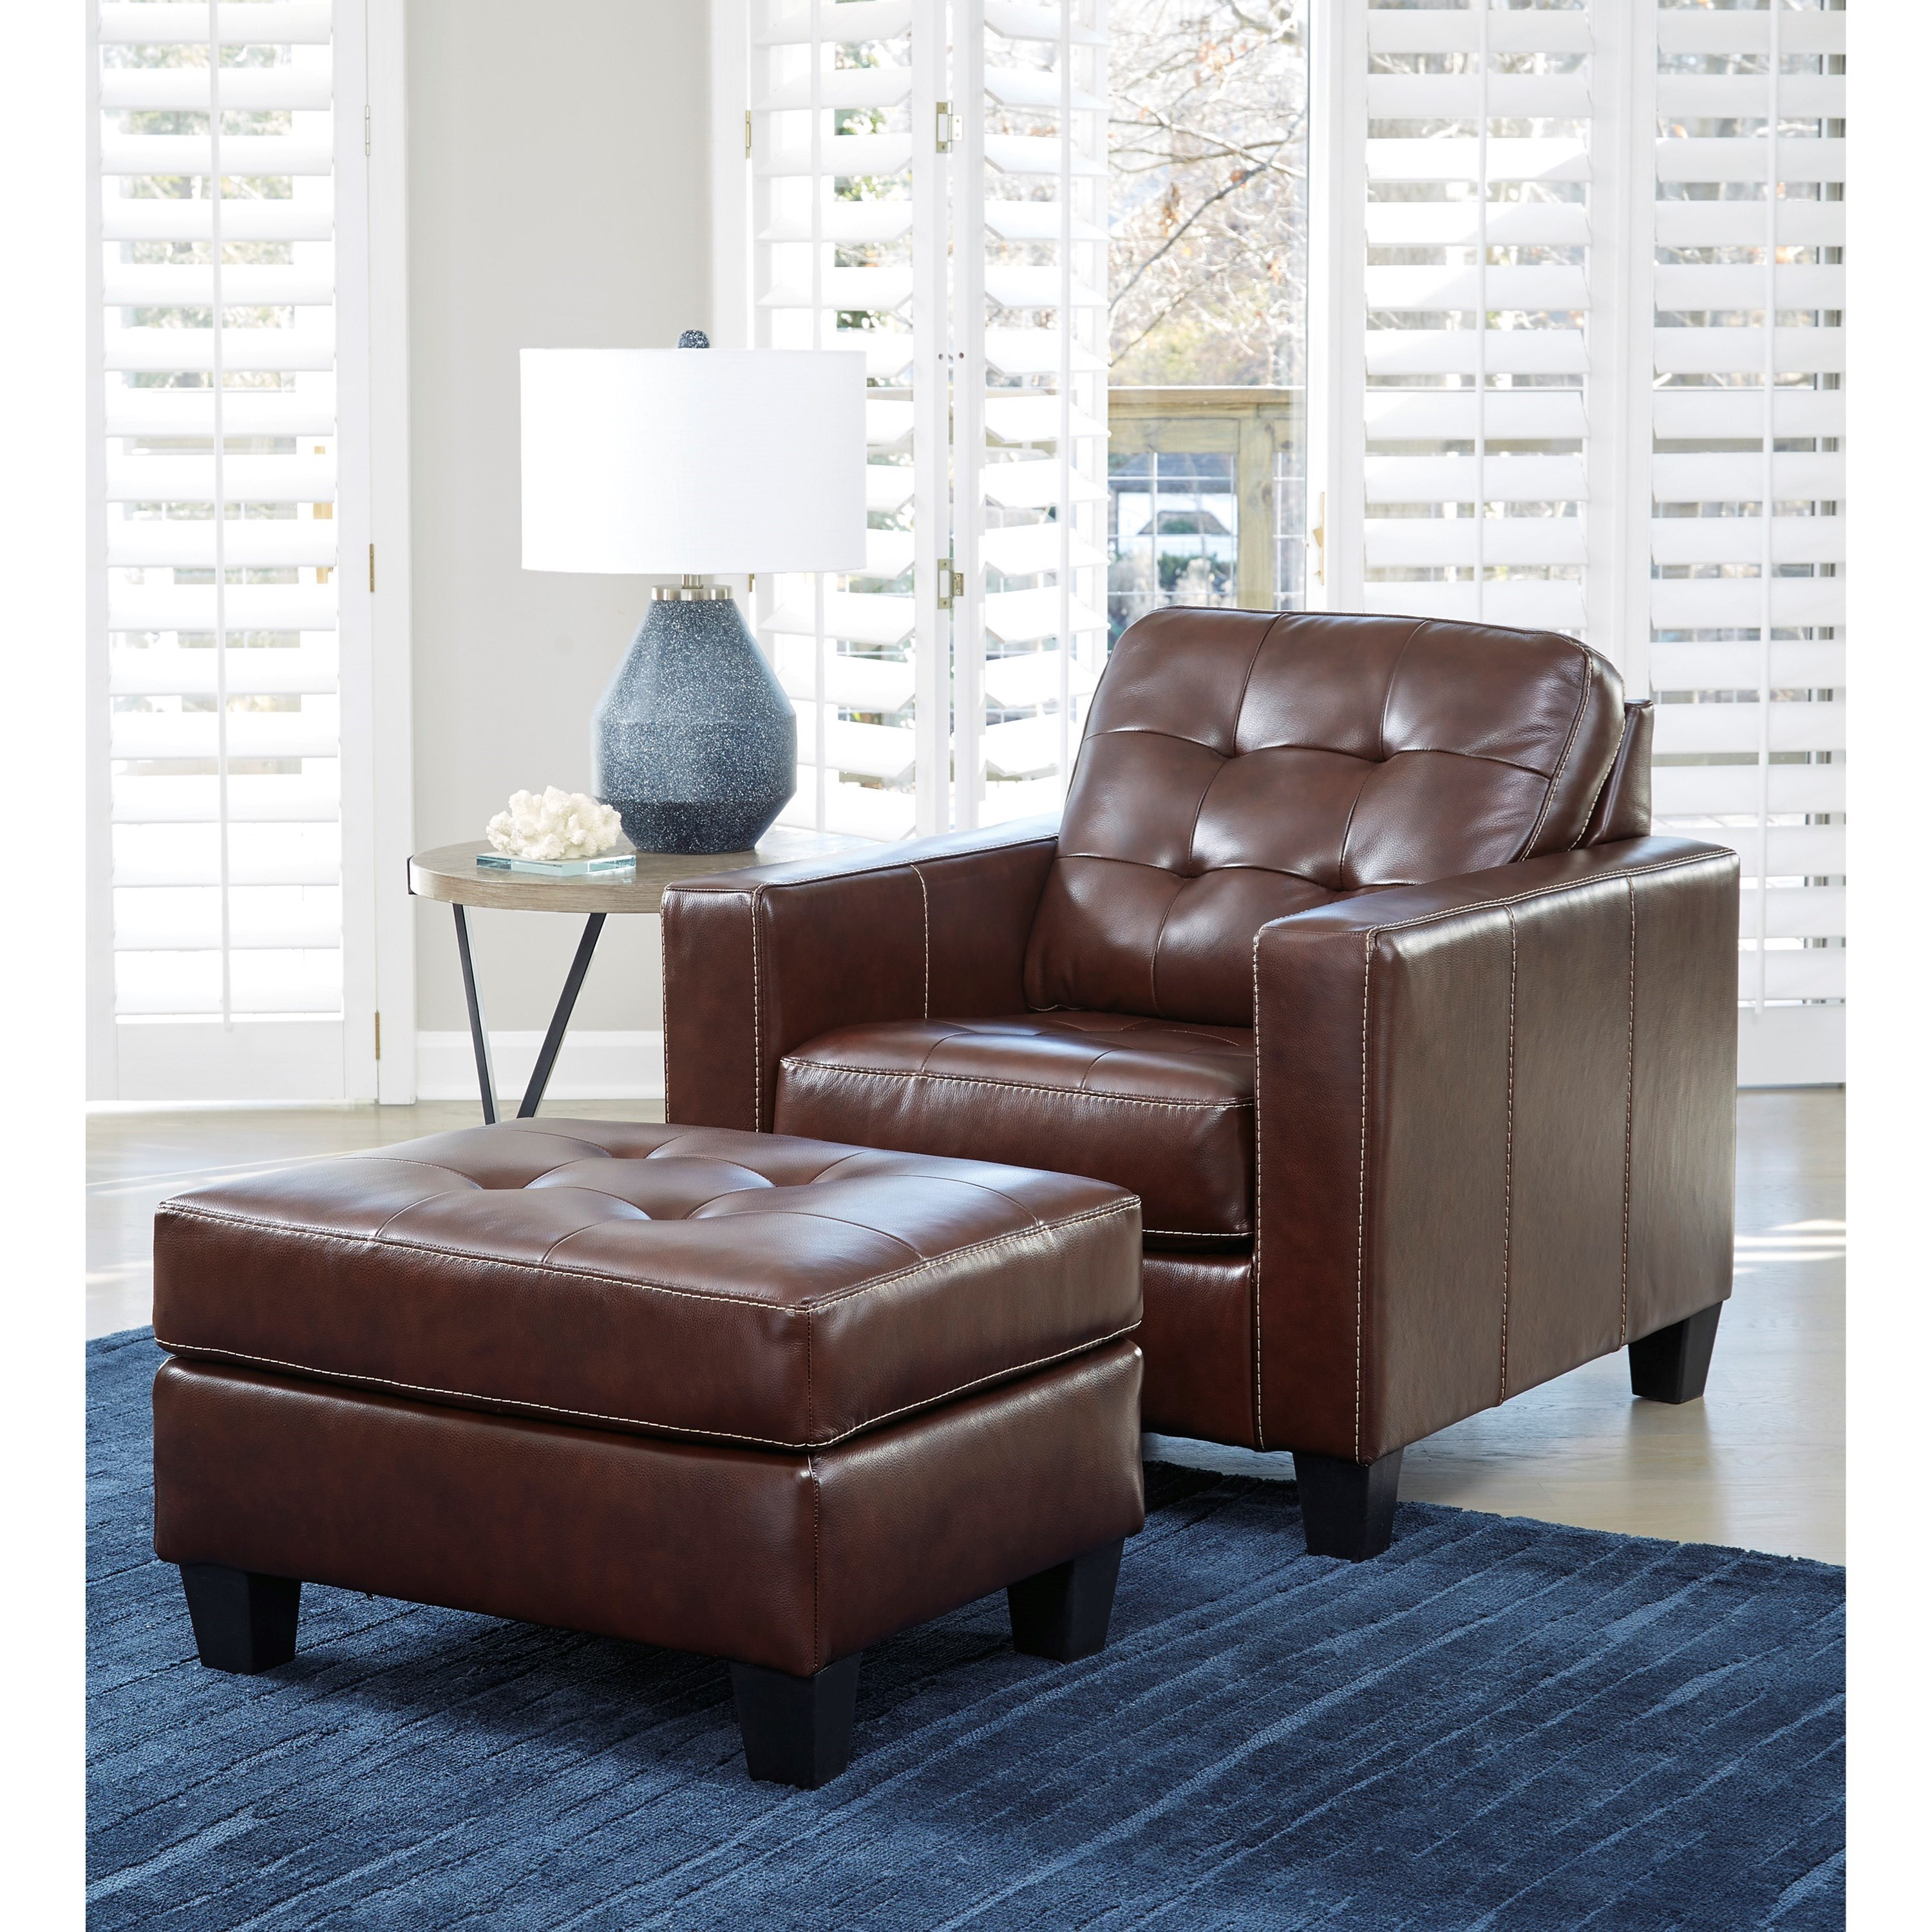 Altonbury Chair and Ottoman Set by Signature Design by Ashley at Catalog Outlet